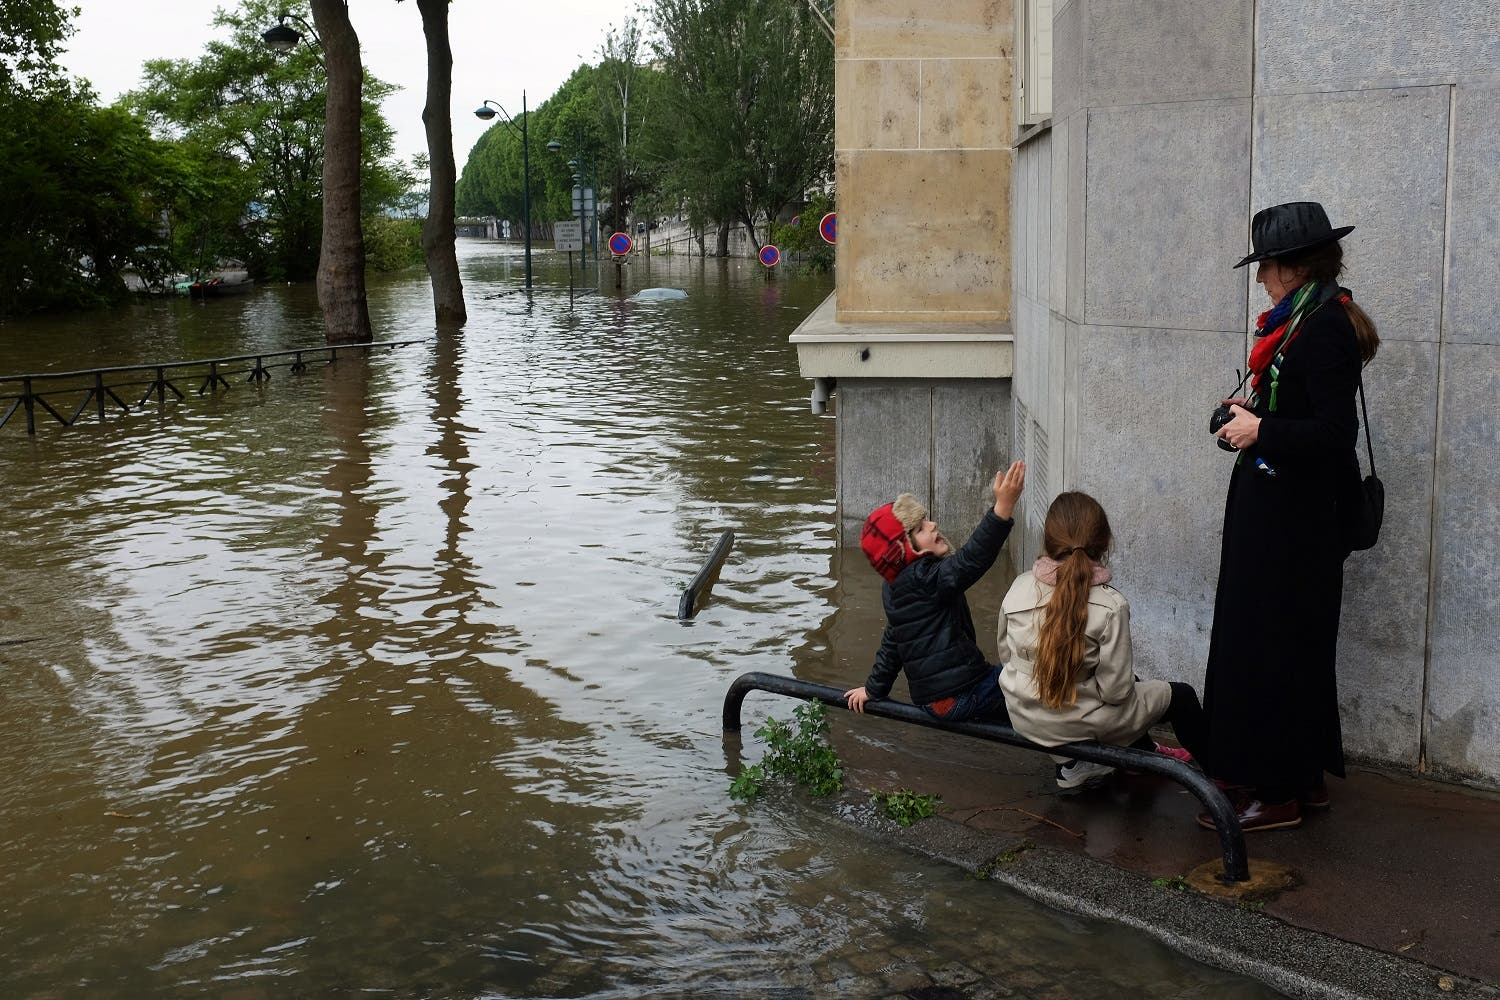 A family visits the flooded banks of the Seine river near the Eiffel Tower in Paris, France (Photo: Jerome Delay/AP)